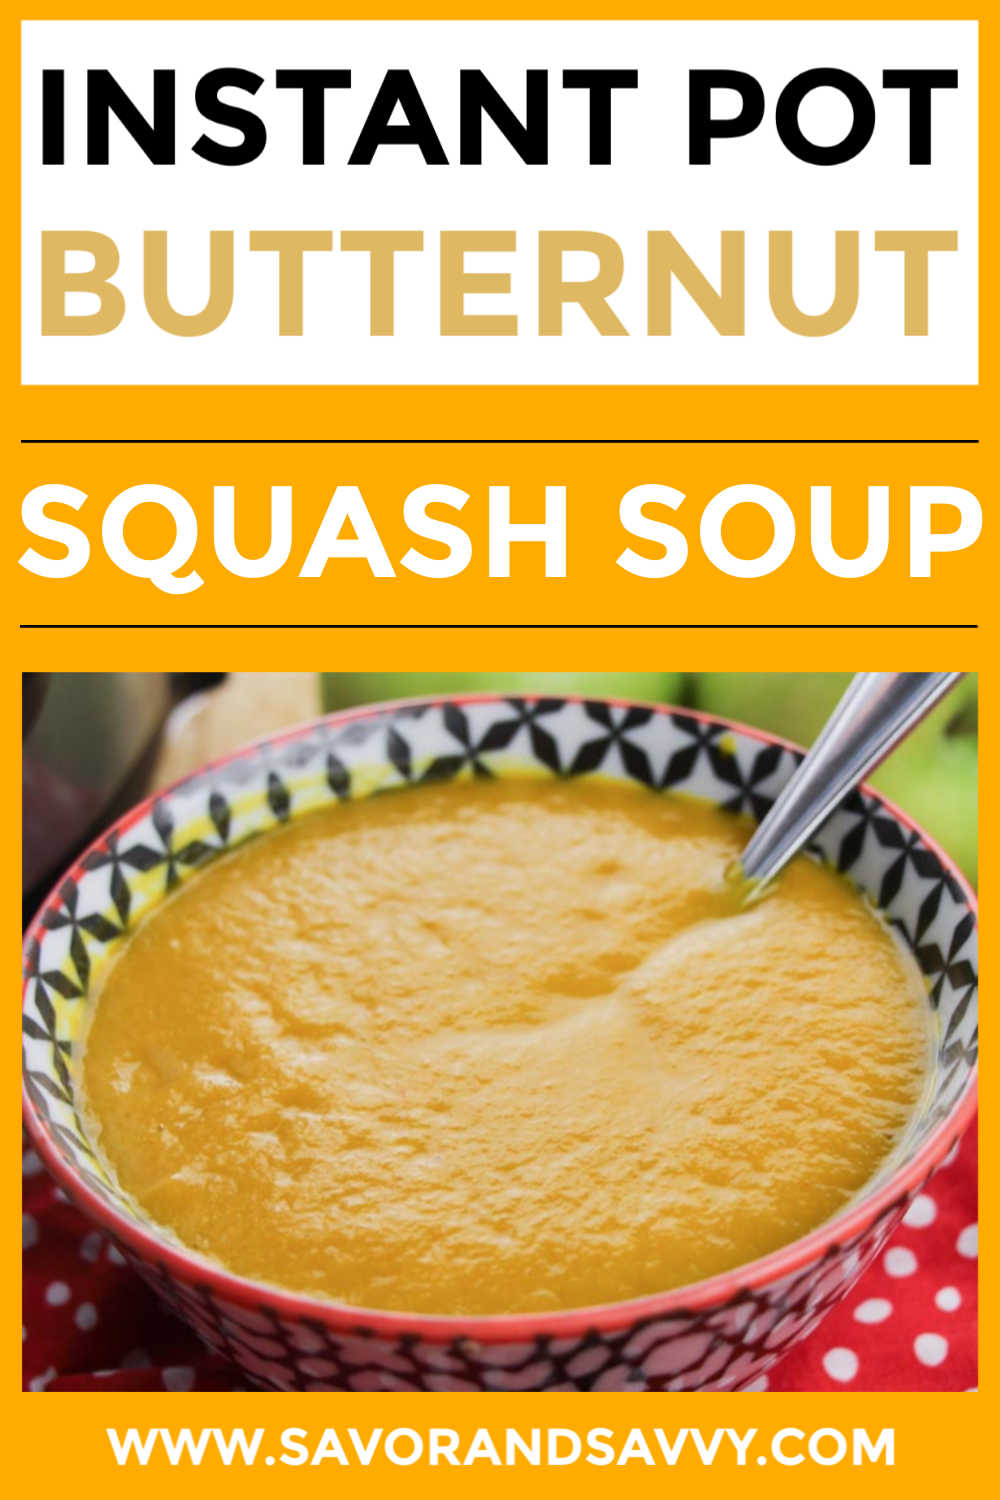 Easy and Fast Instant Pot Butternut Squash Soup